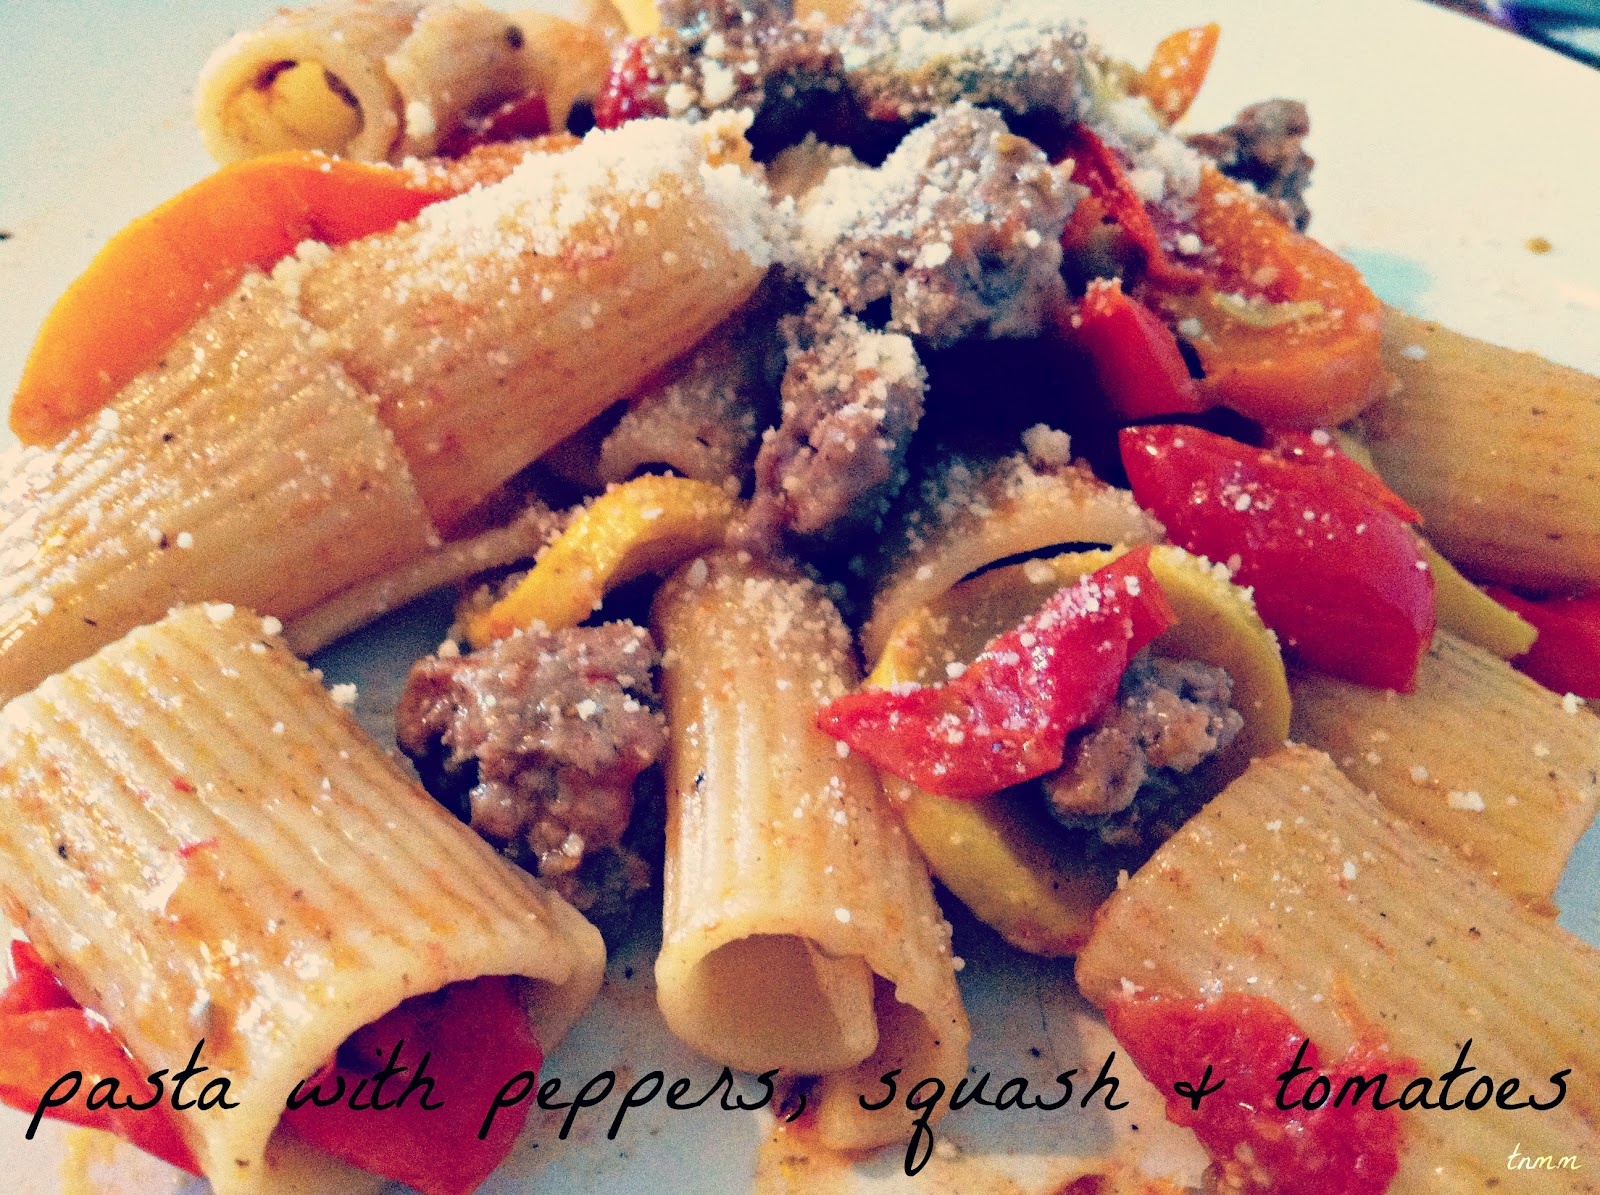 Pasta With Peppers, Squash, and Tomatoes | Tasty Tuesday # ...